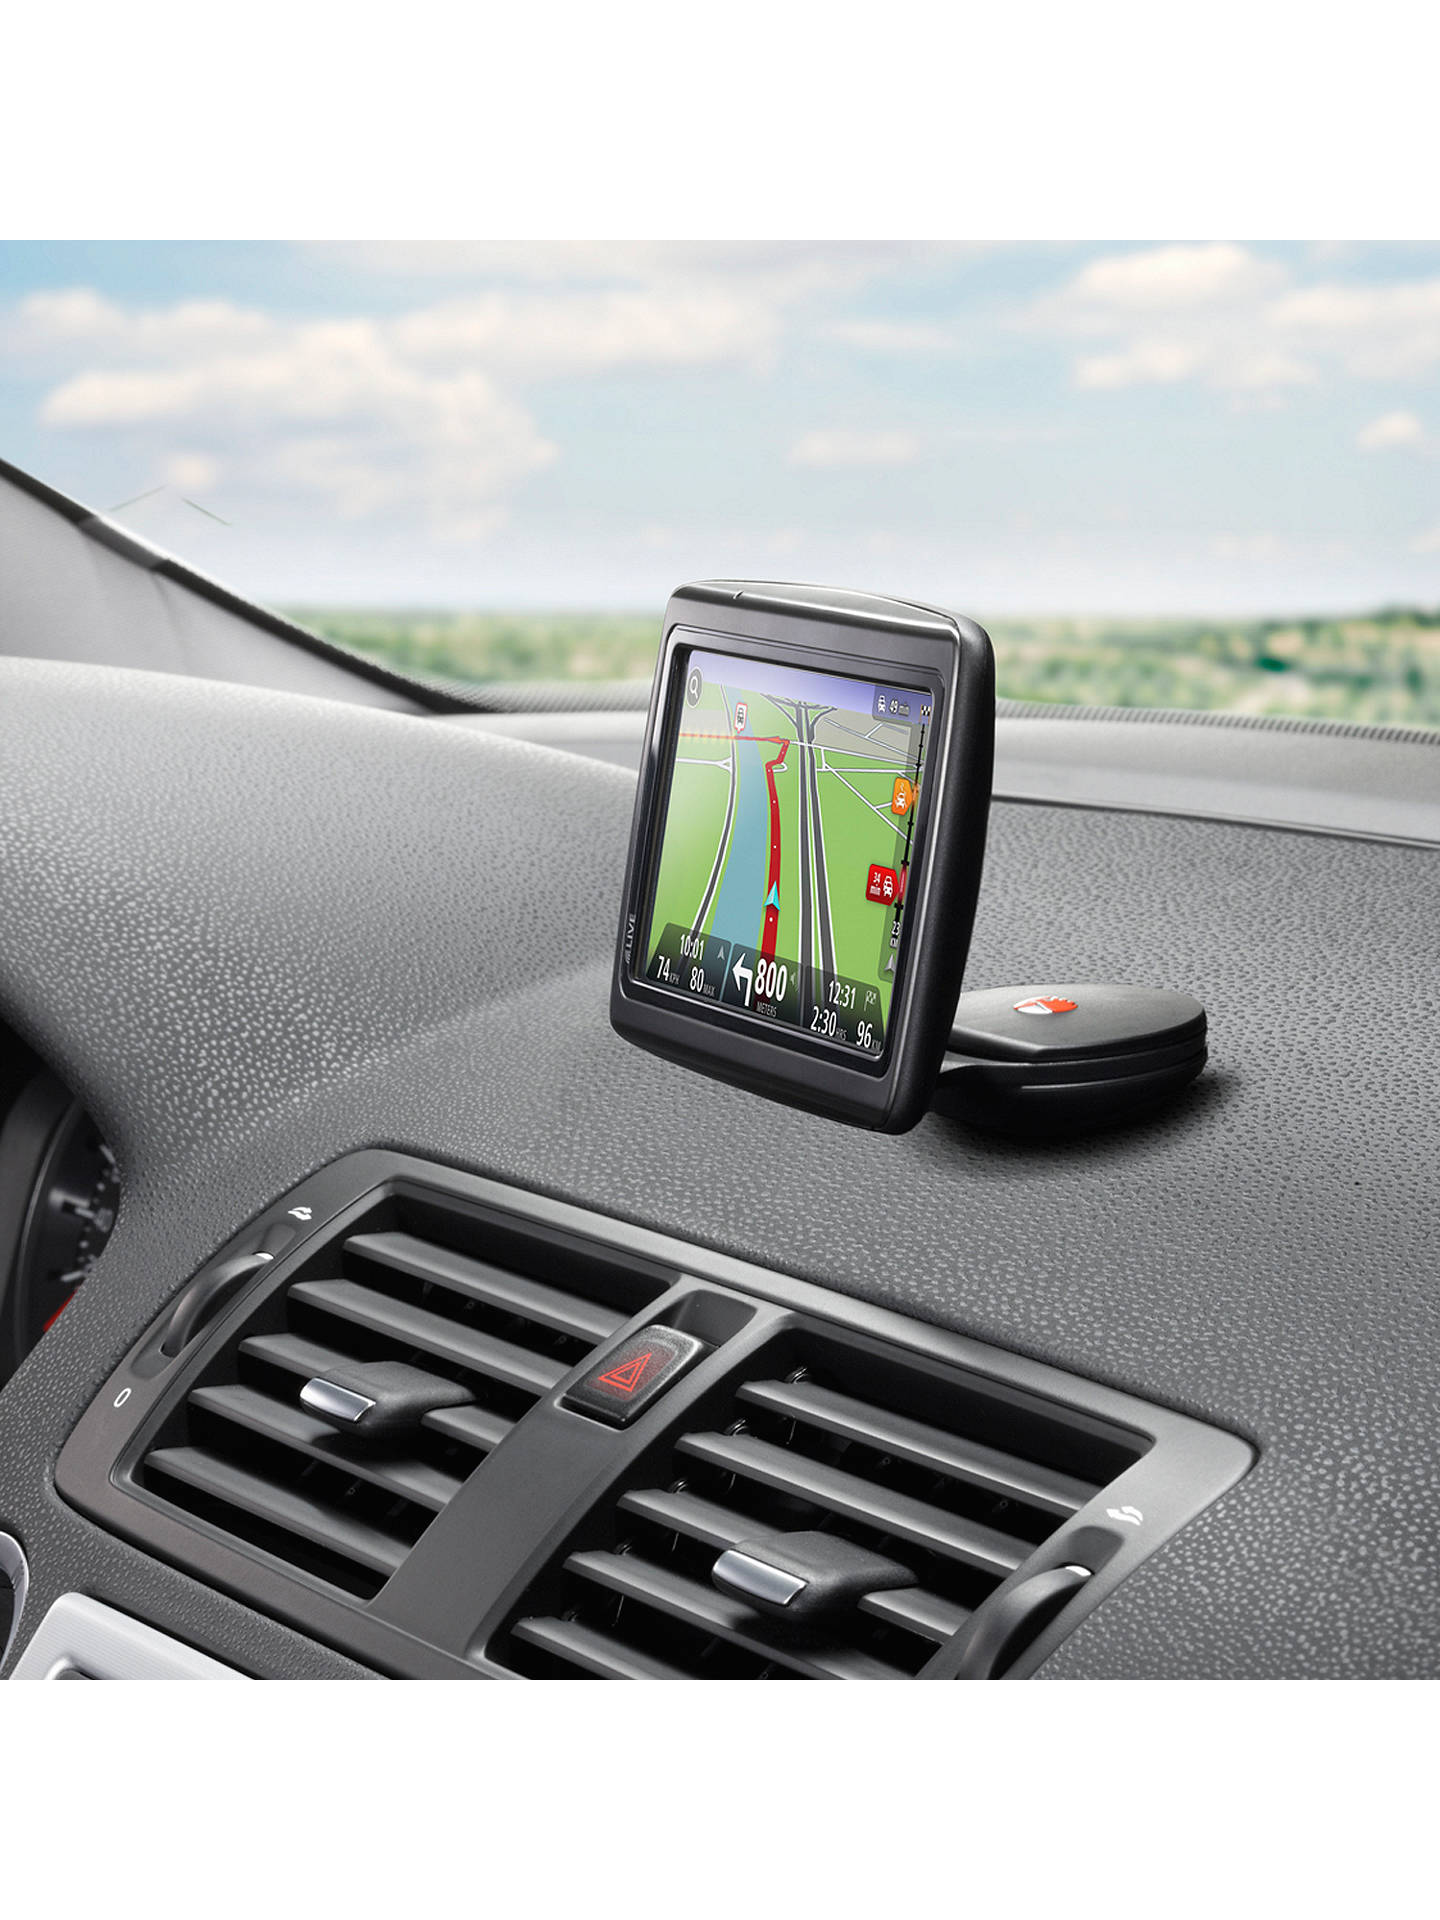 TomTom Easy Dashboard Mount at John Lewis & Partners